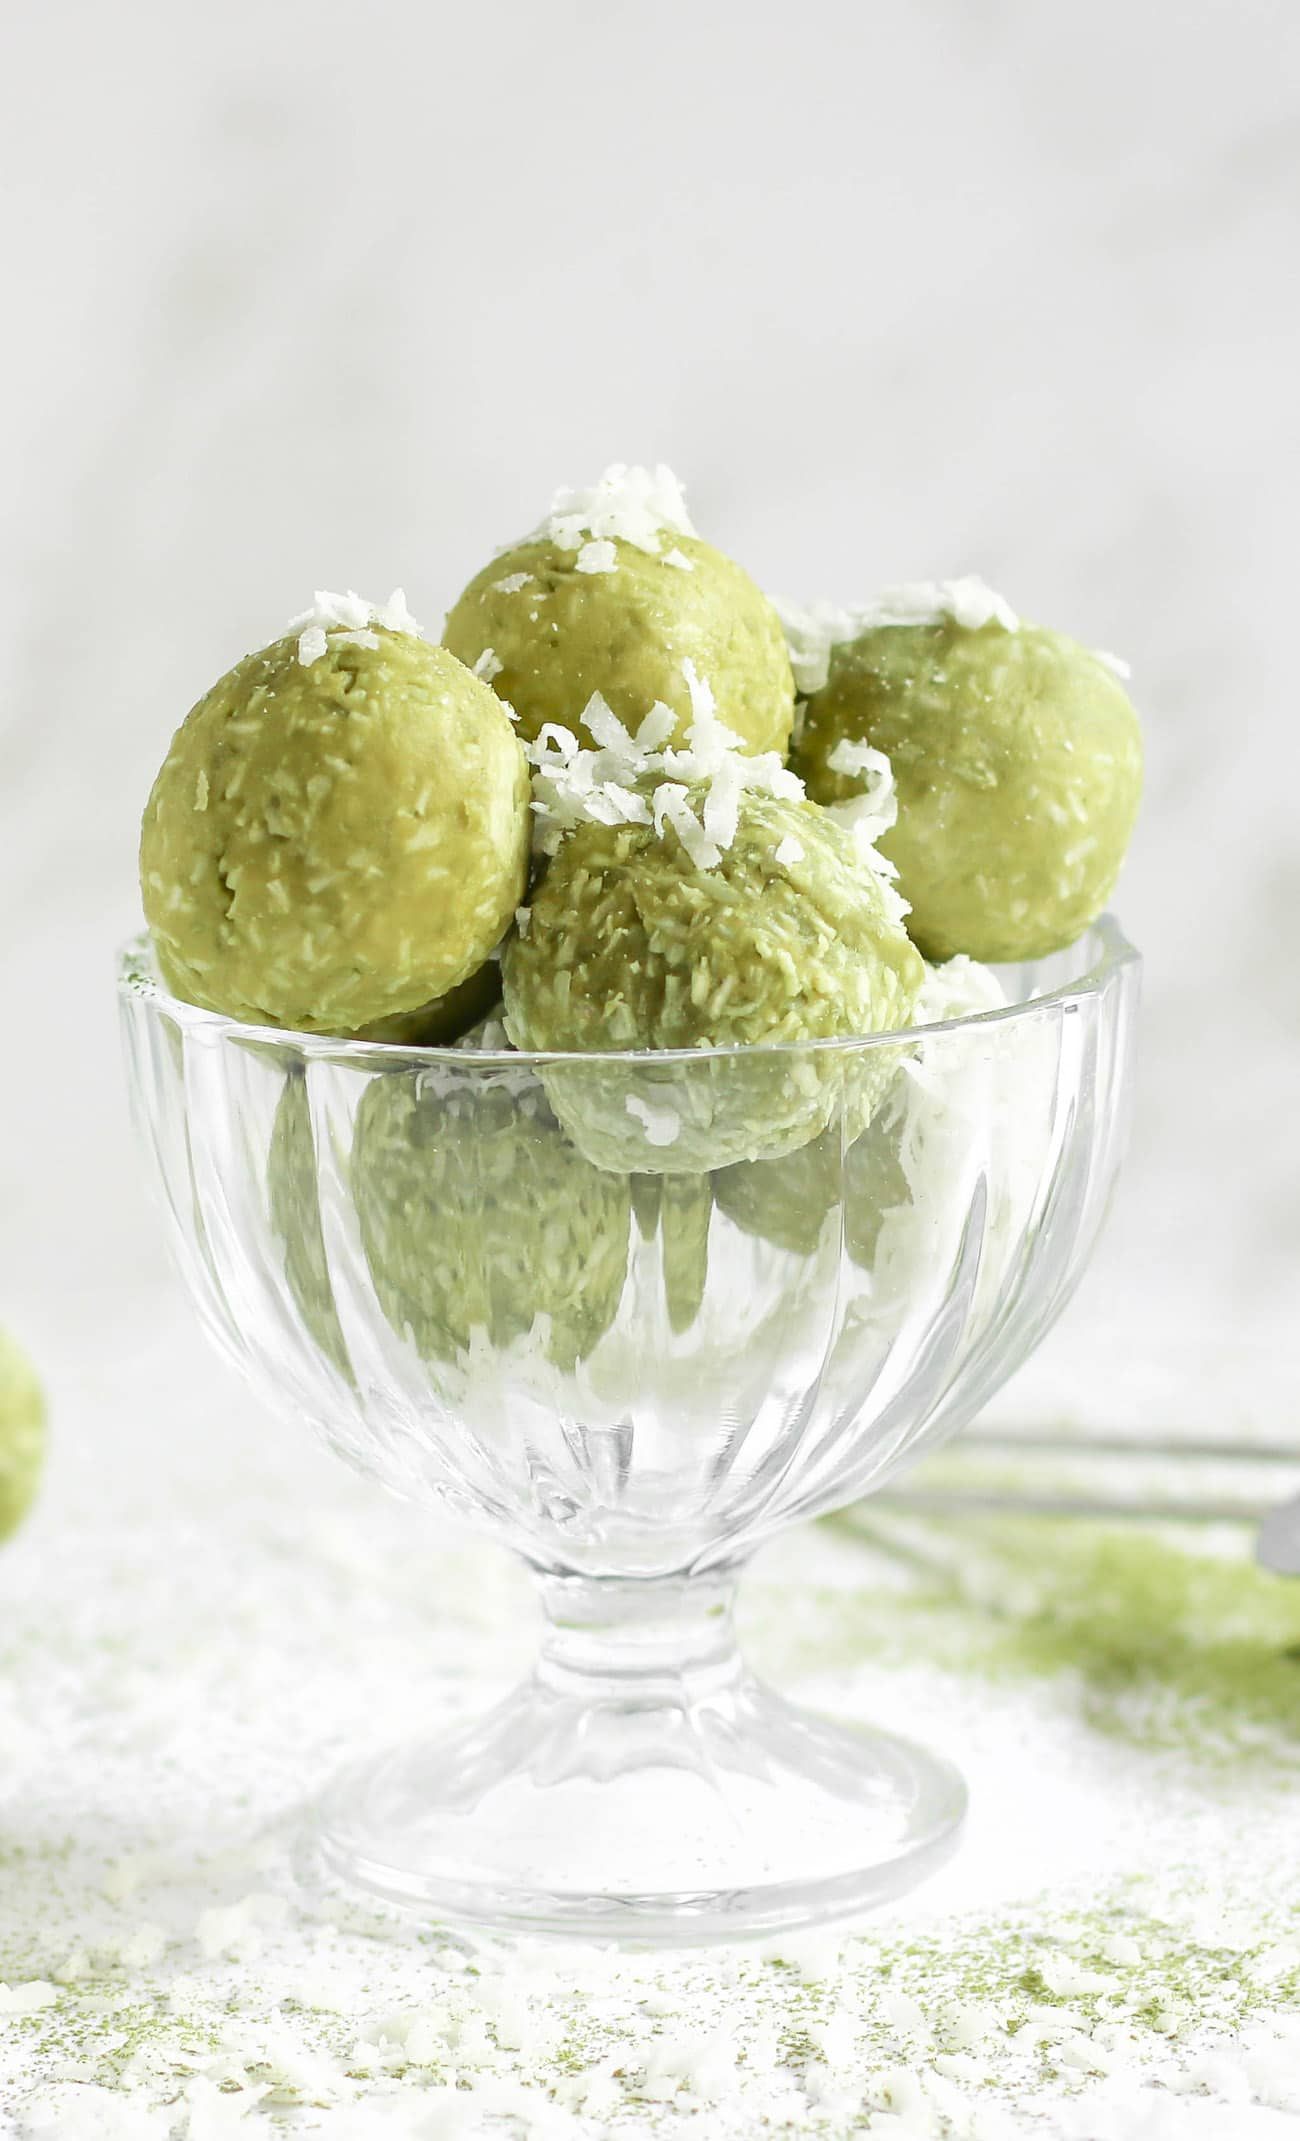 Easy, no-bake, 6-ingredient Matcha Coconut Truffles made healthy! They're rich and sweet yet made without butter, heavy cream, and sugar. They're keto-friendly, low carb, sugar free, and gluten free too!